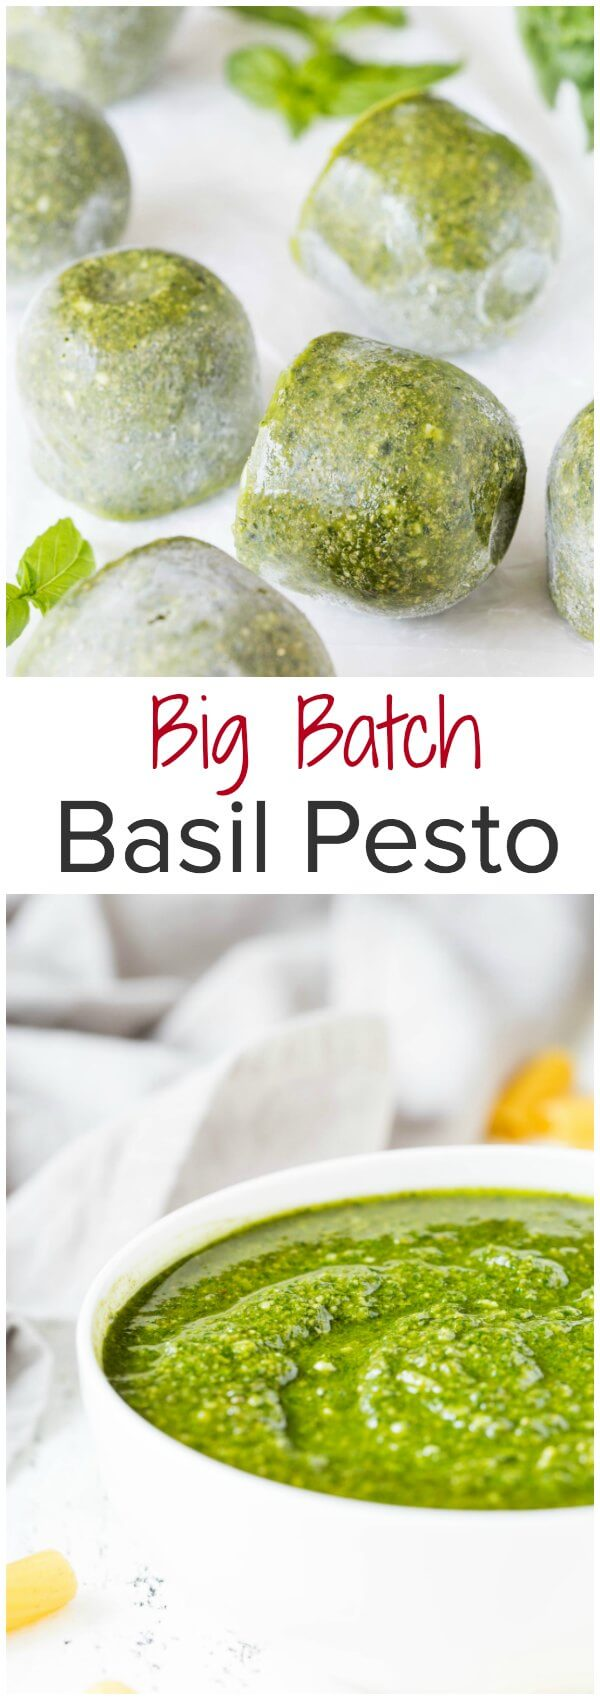 Stock your freezer with big batch basil pesto from scratch. This classic pesto recipe requires only 6 ingredients, but will be enough for more than 8 meals!